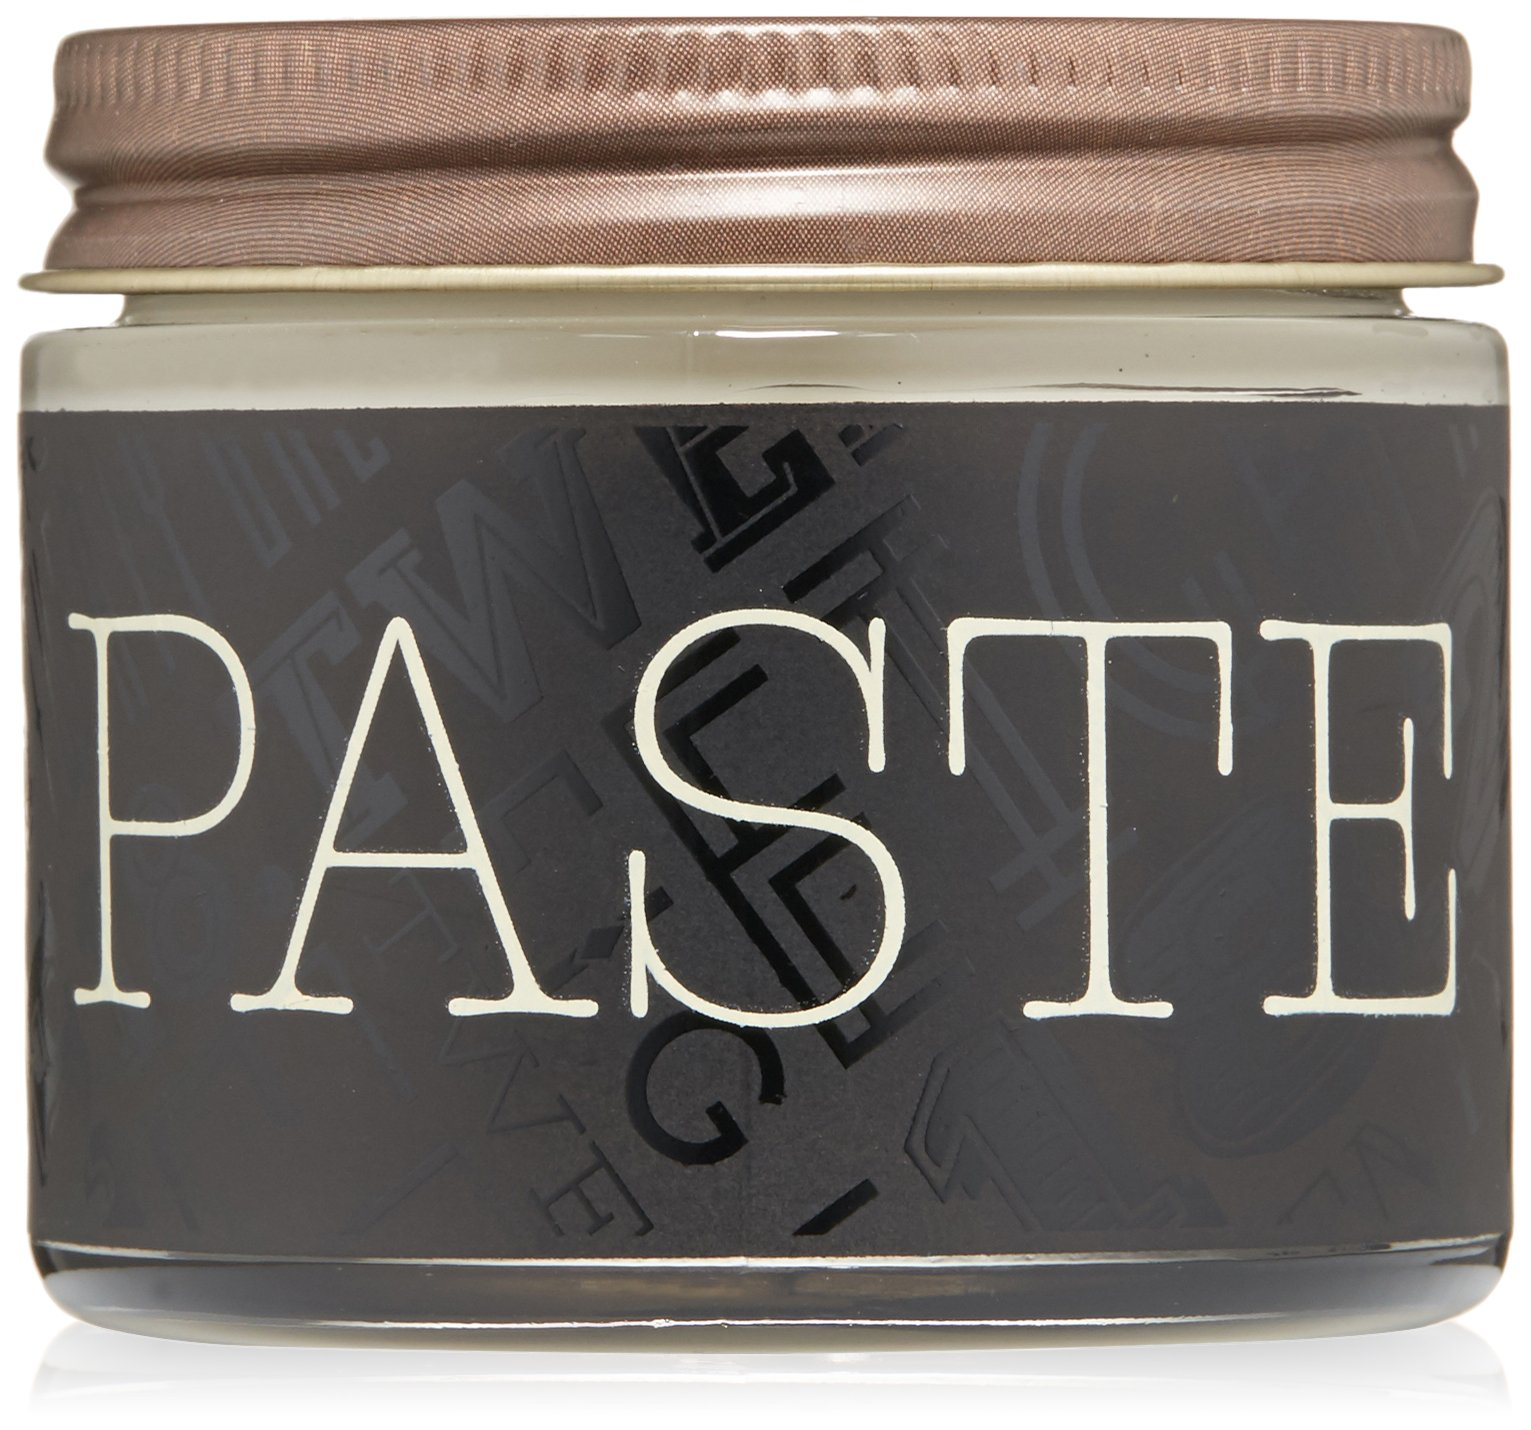 18.21 Man Made Hair Paste Pomade with Natural Shine Finish for Men, Sweet Tobacco, 2 oz by 18.21 Man Made